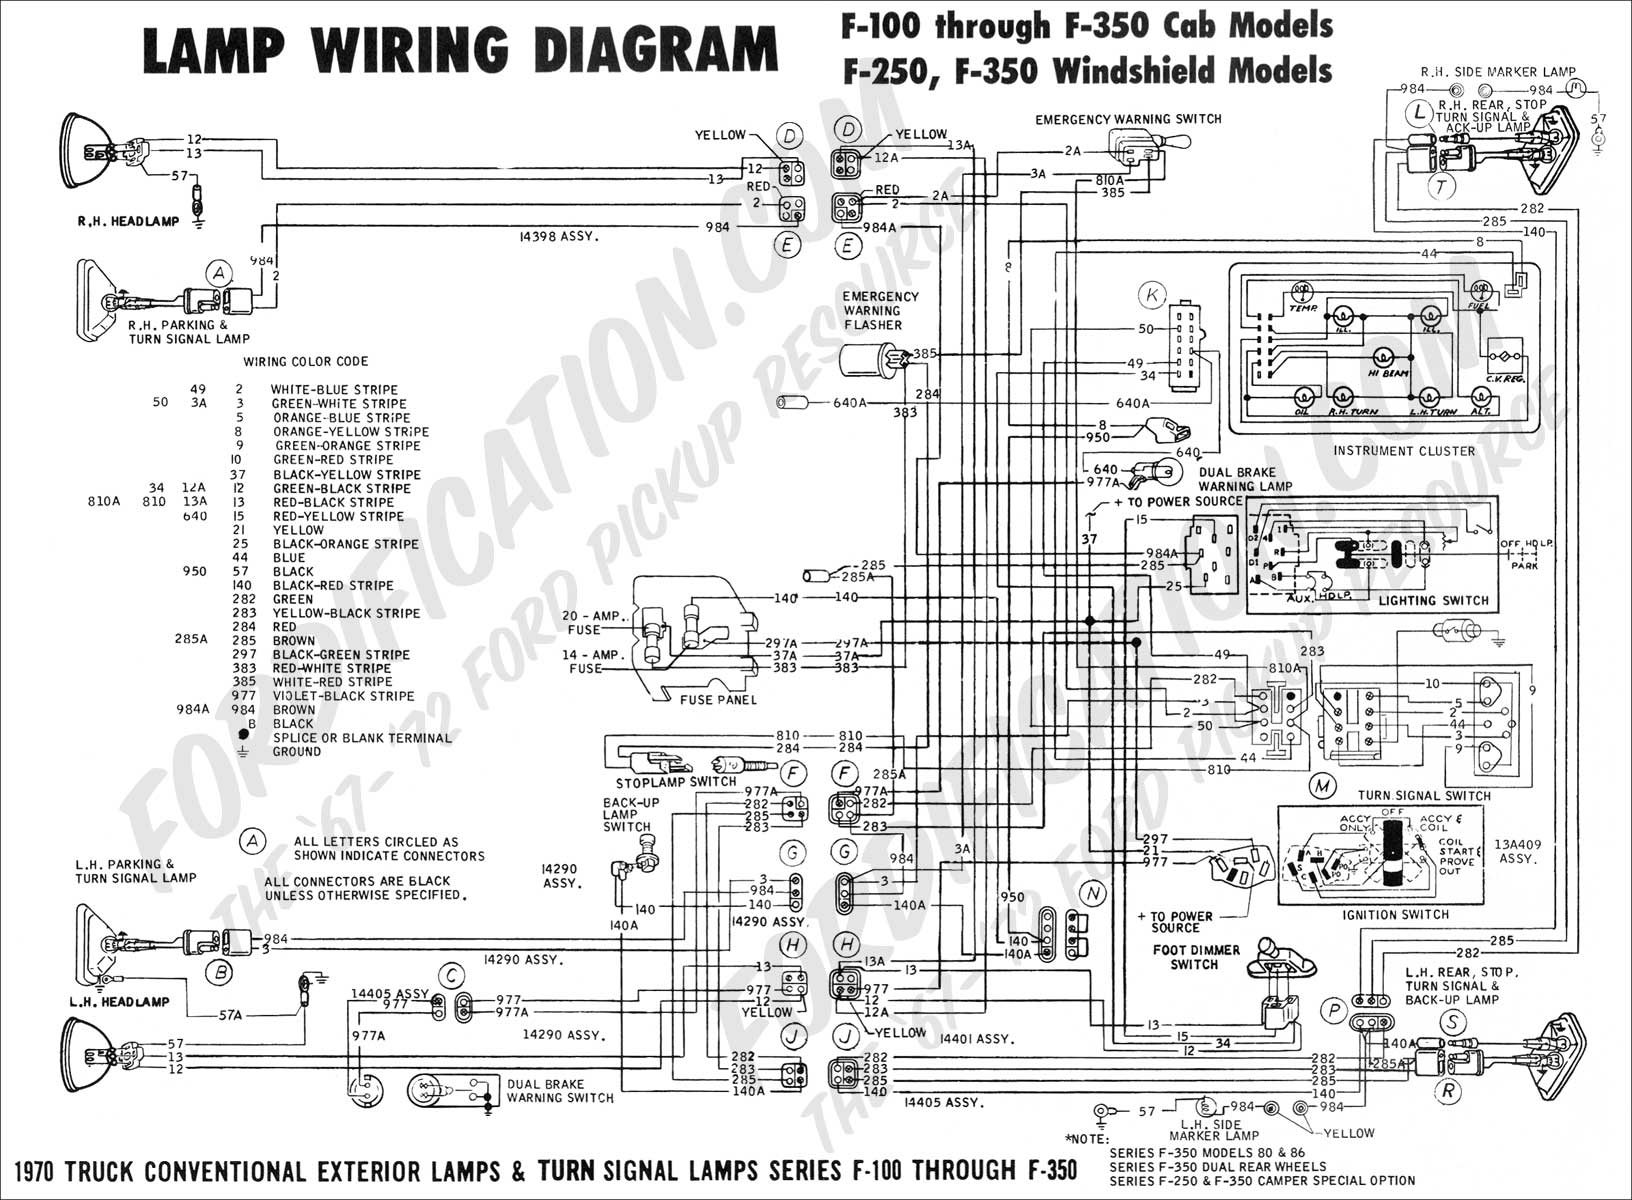 1999 F250 Trailer Wiring Diagram | Trailer Wiring Diagram